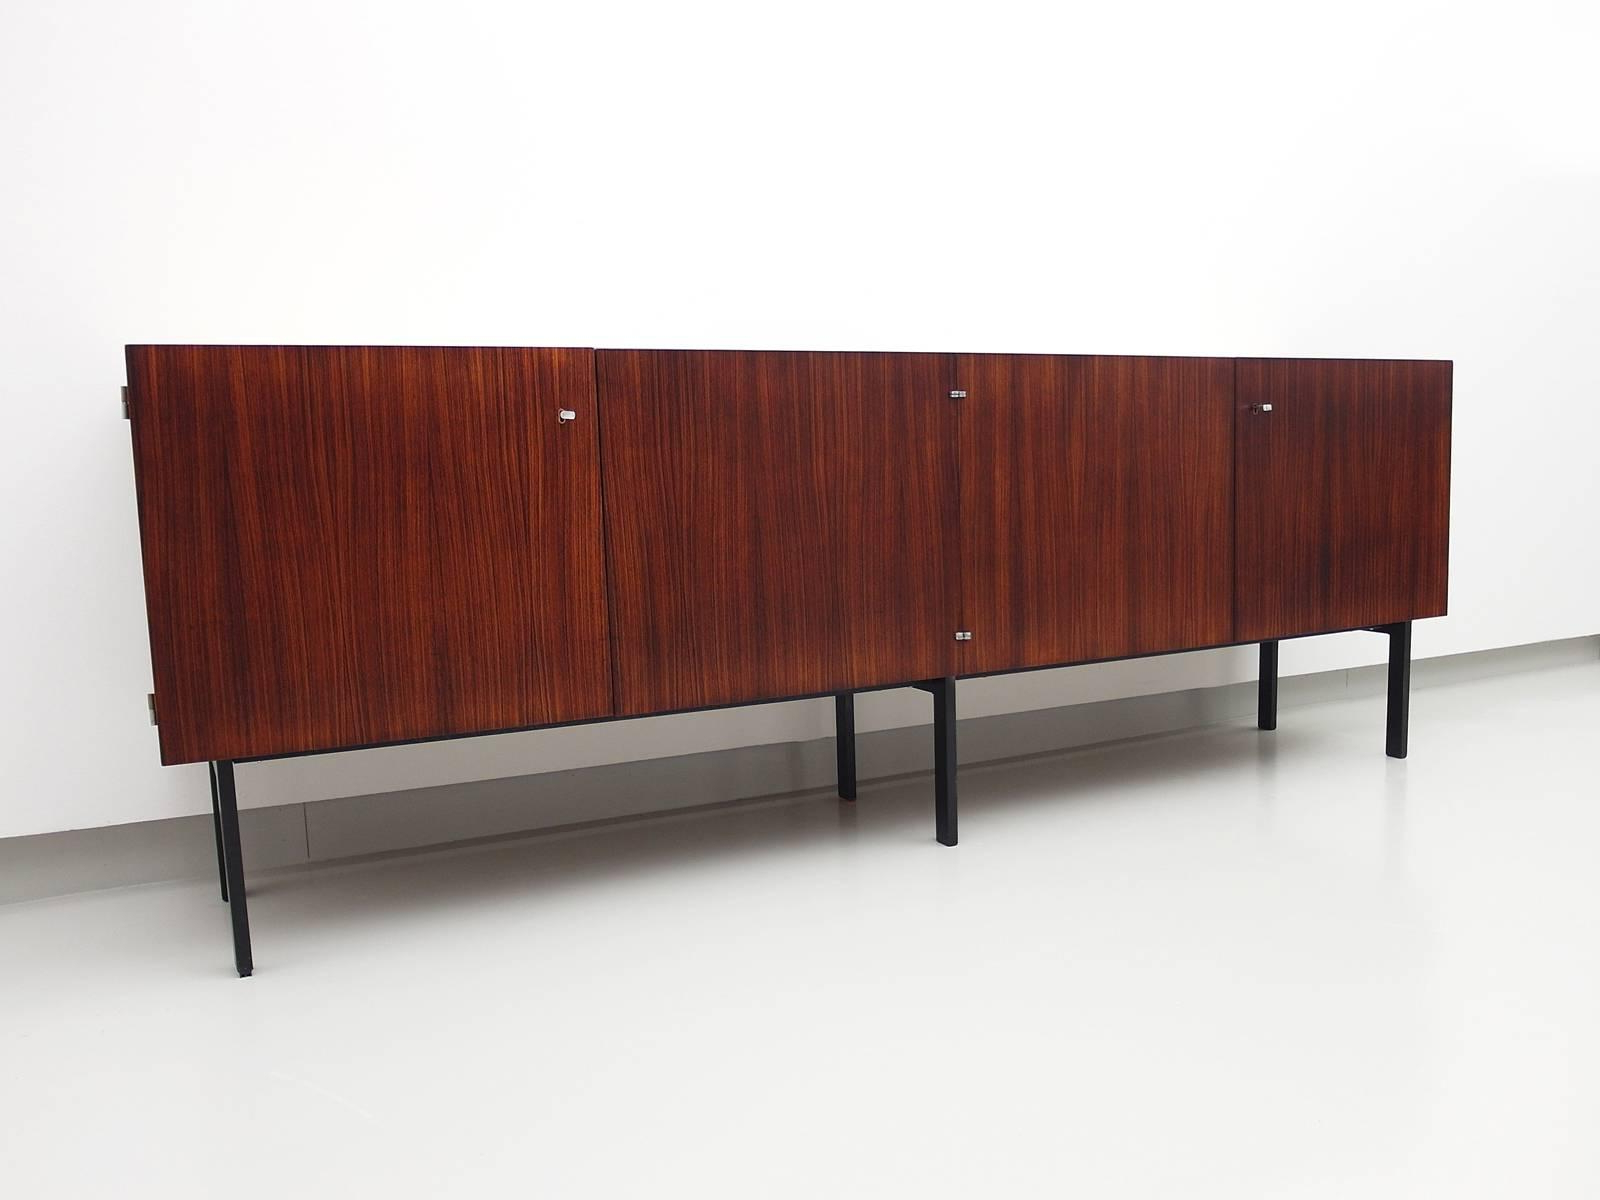 Rosewood Sideboard Attributed To Etienne Fermigier For Meubles Et Fonction, 1961 Pertaining To Etienne Sideboards (View 9 of 20)